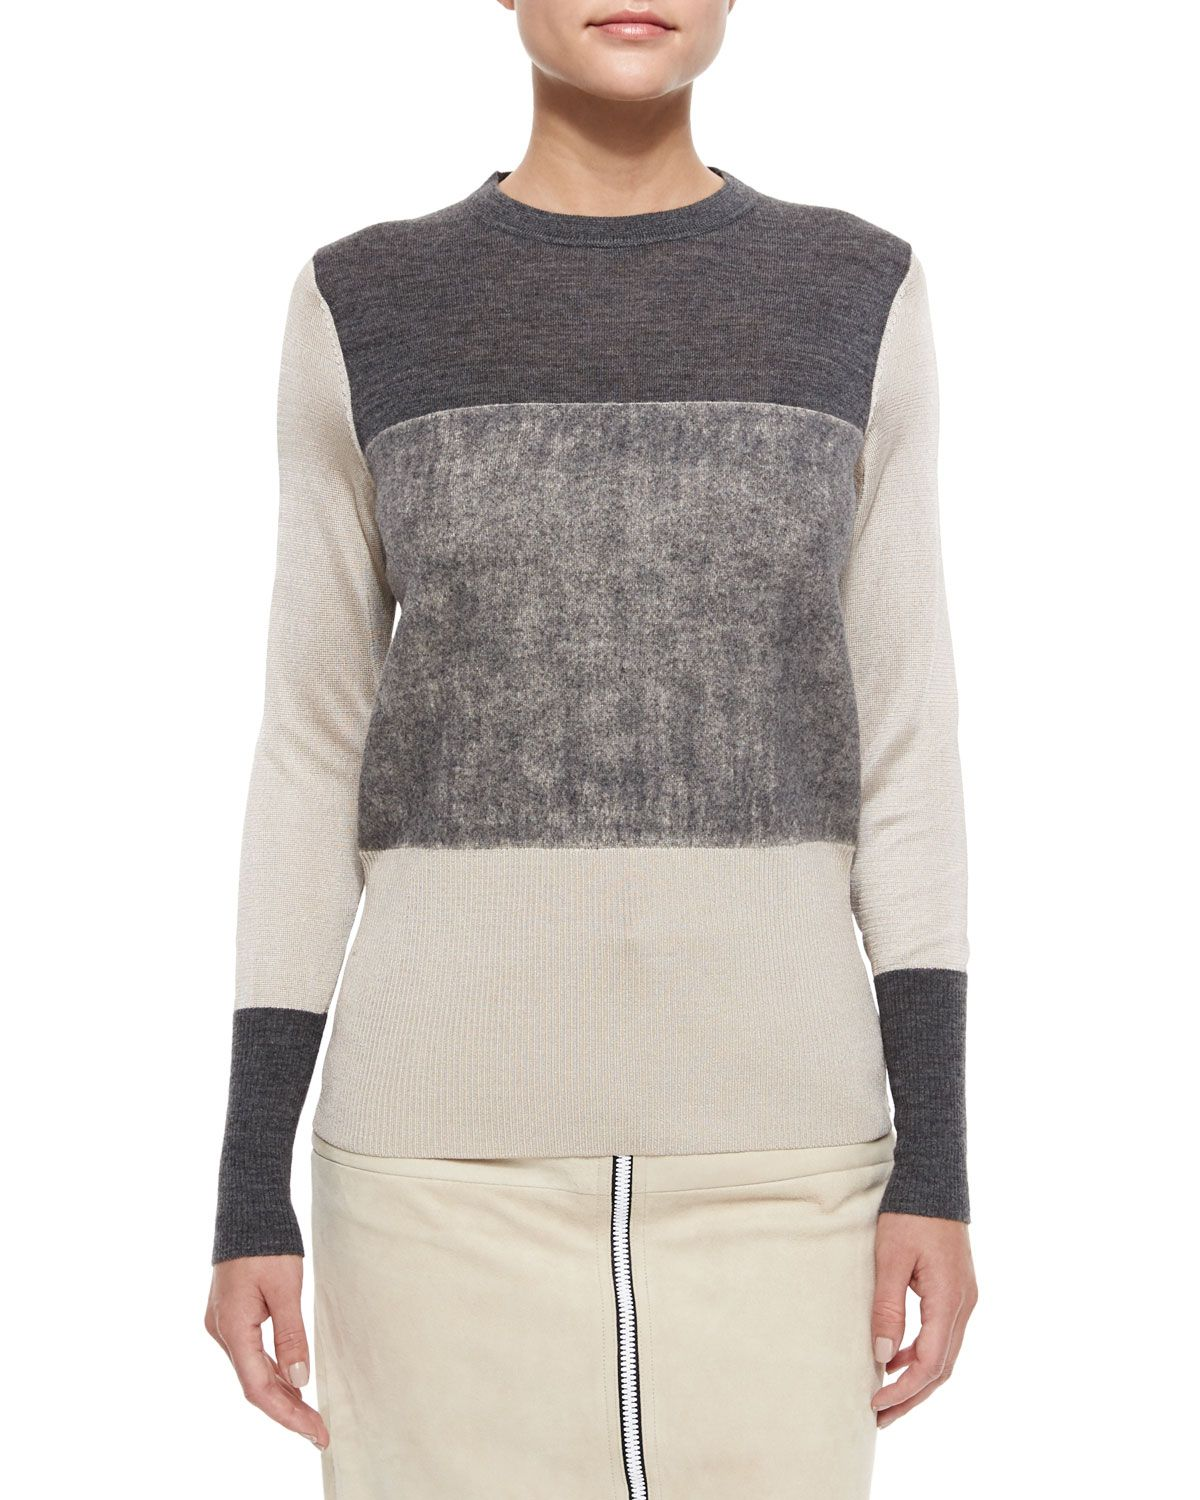 Rag & Bone Marissa Colorblock Knit Sweater, Size: MEDIUM